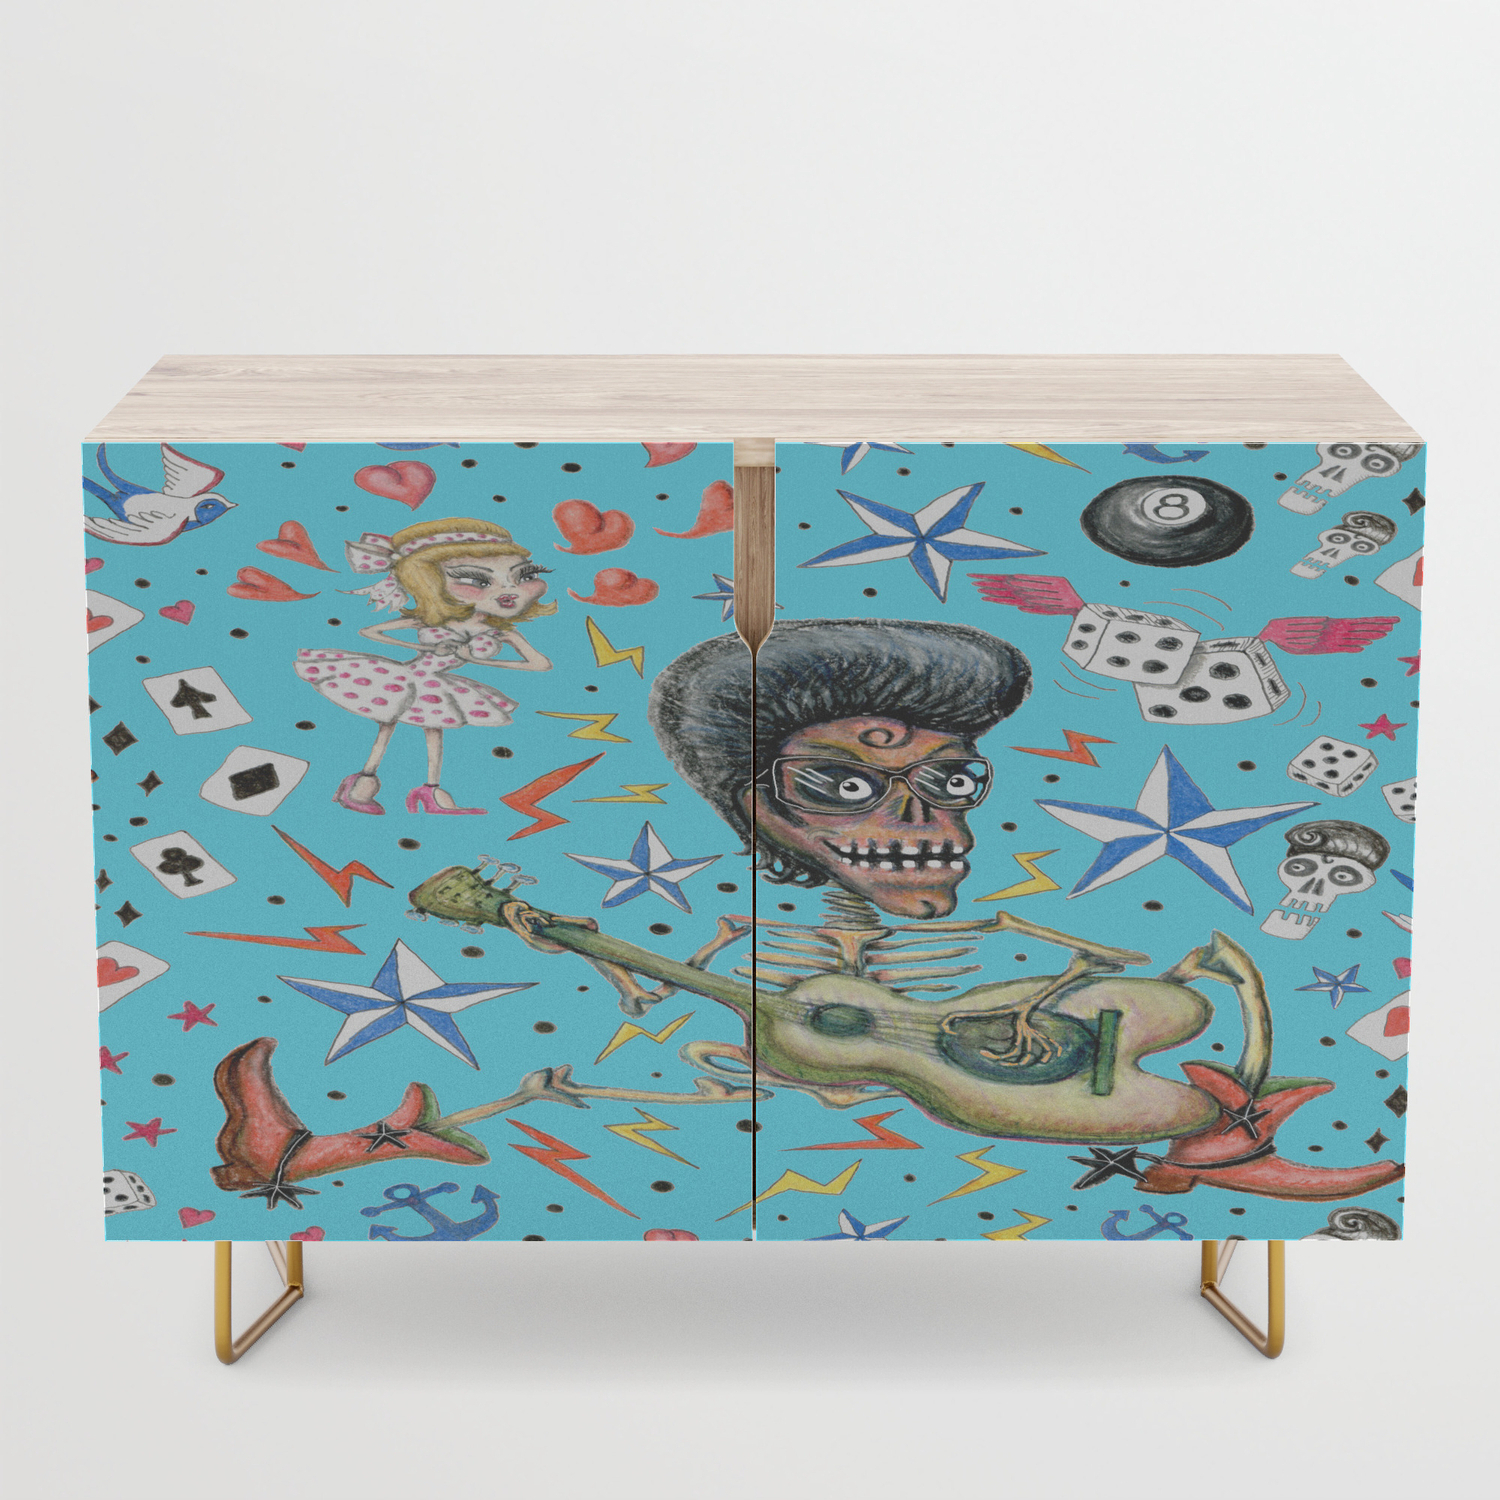 Rockabilly Bone Daddy Crush, Blue Turquoise Aqua Credenza Inside Turquoise Skies Credenzas (View 16 of 20)